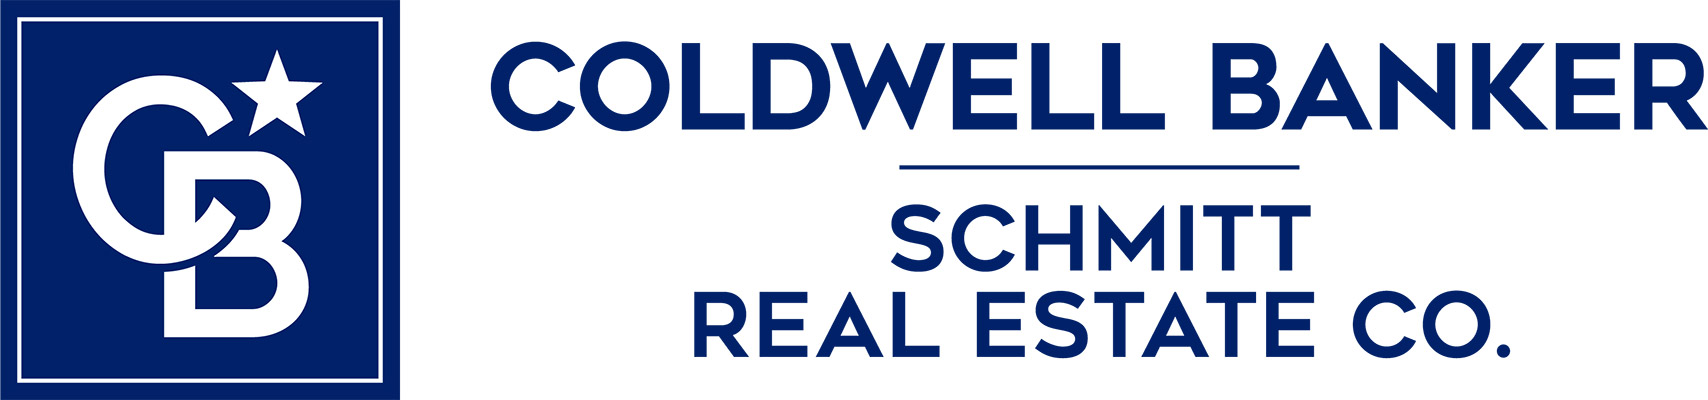 David Wiley - Coldwell Banker Logo